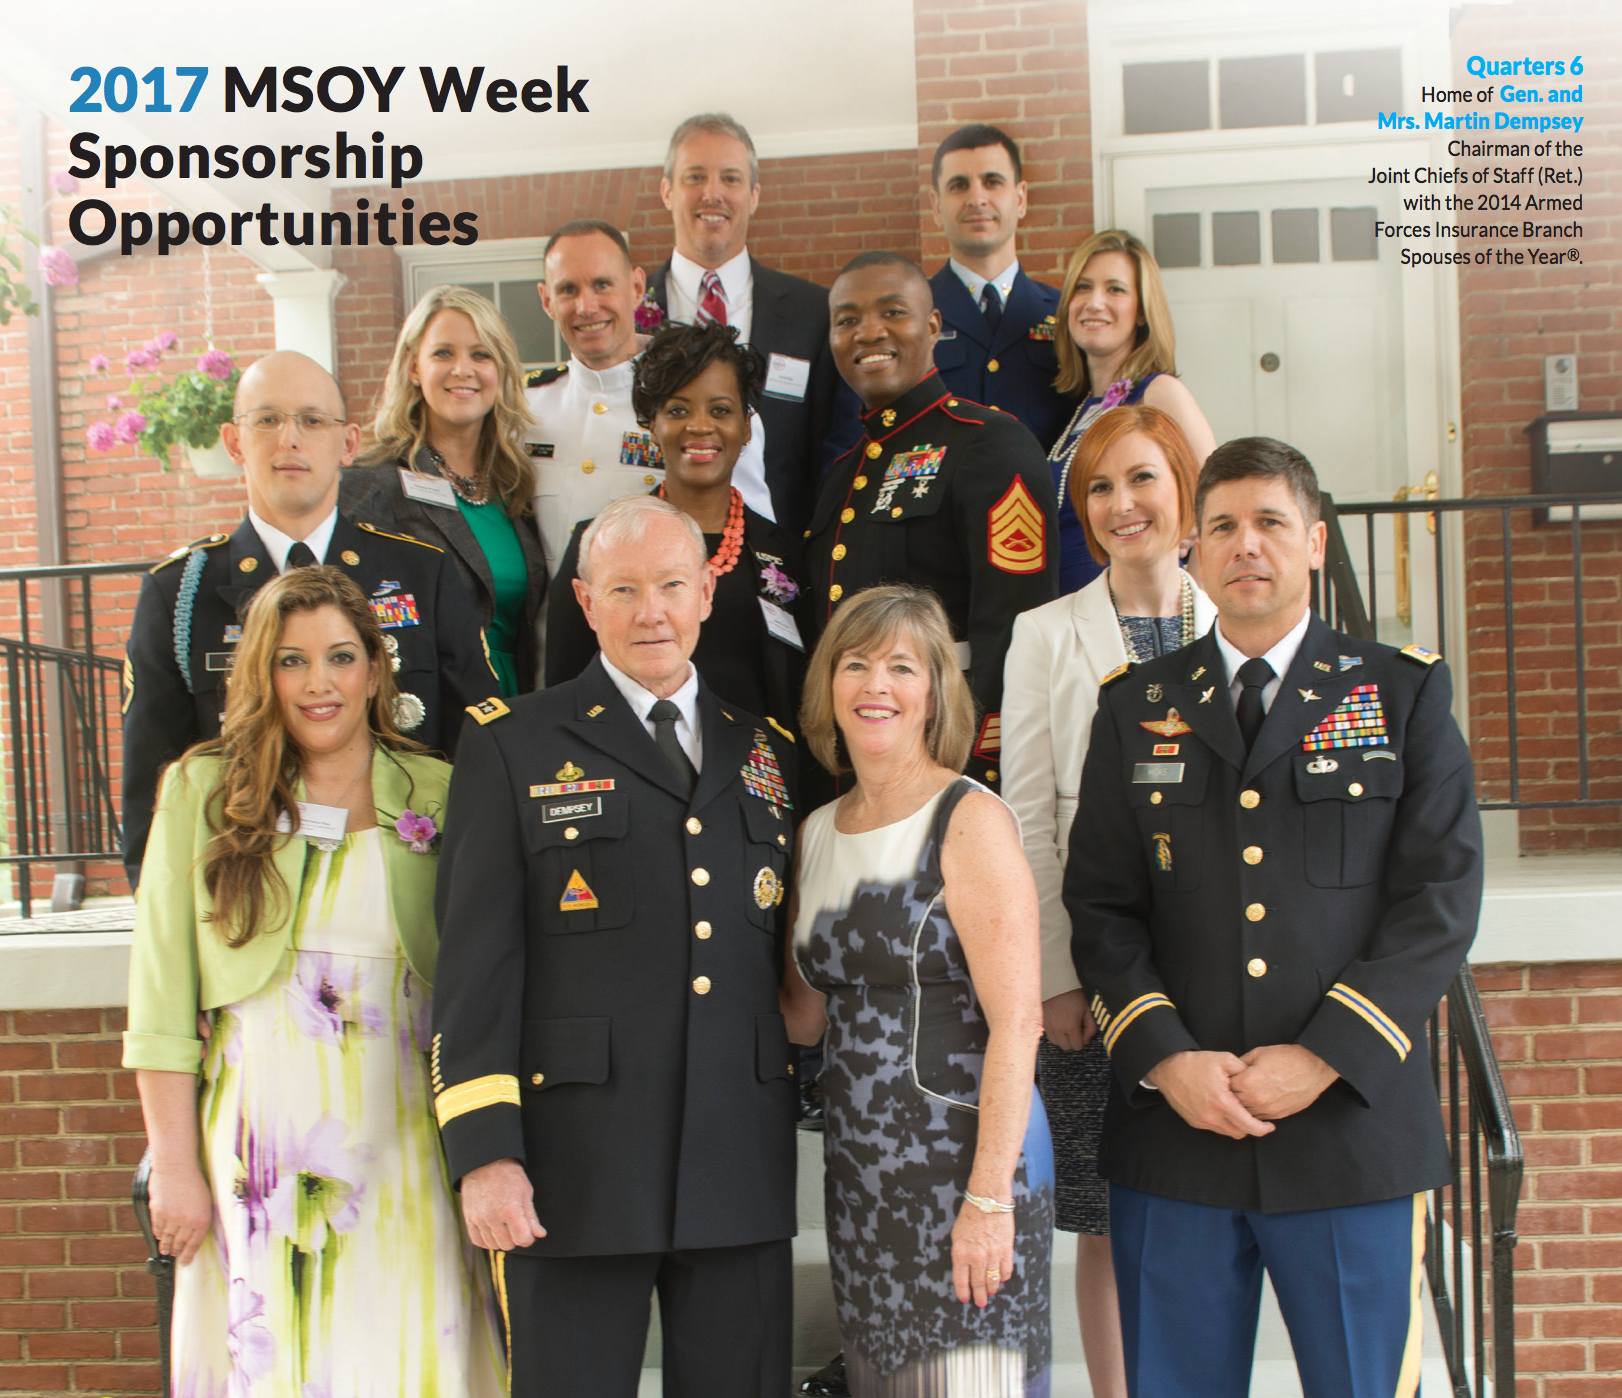 2017 Military Spouse Week - MSOY Week Sponsorship Opportunities